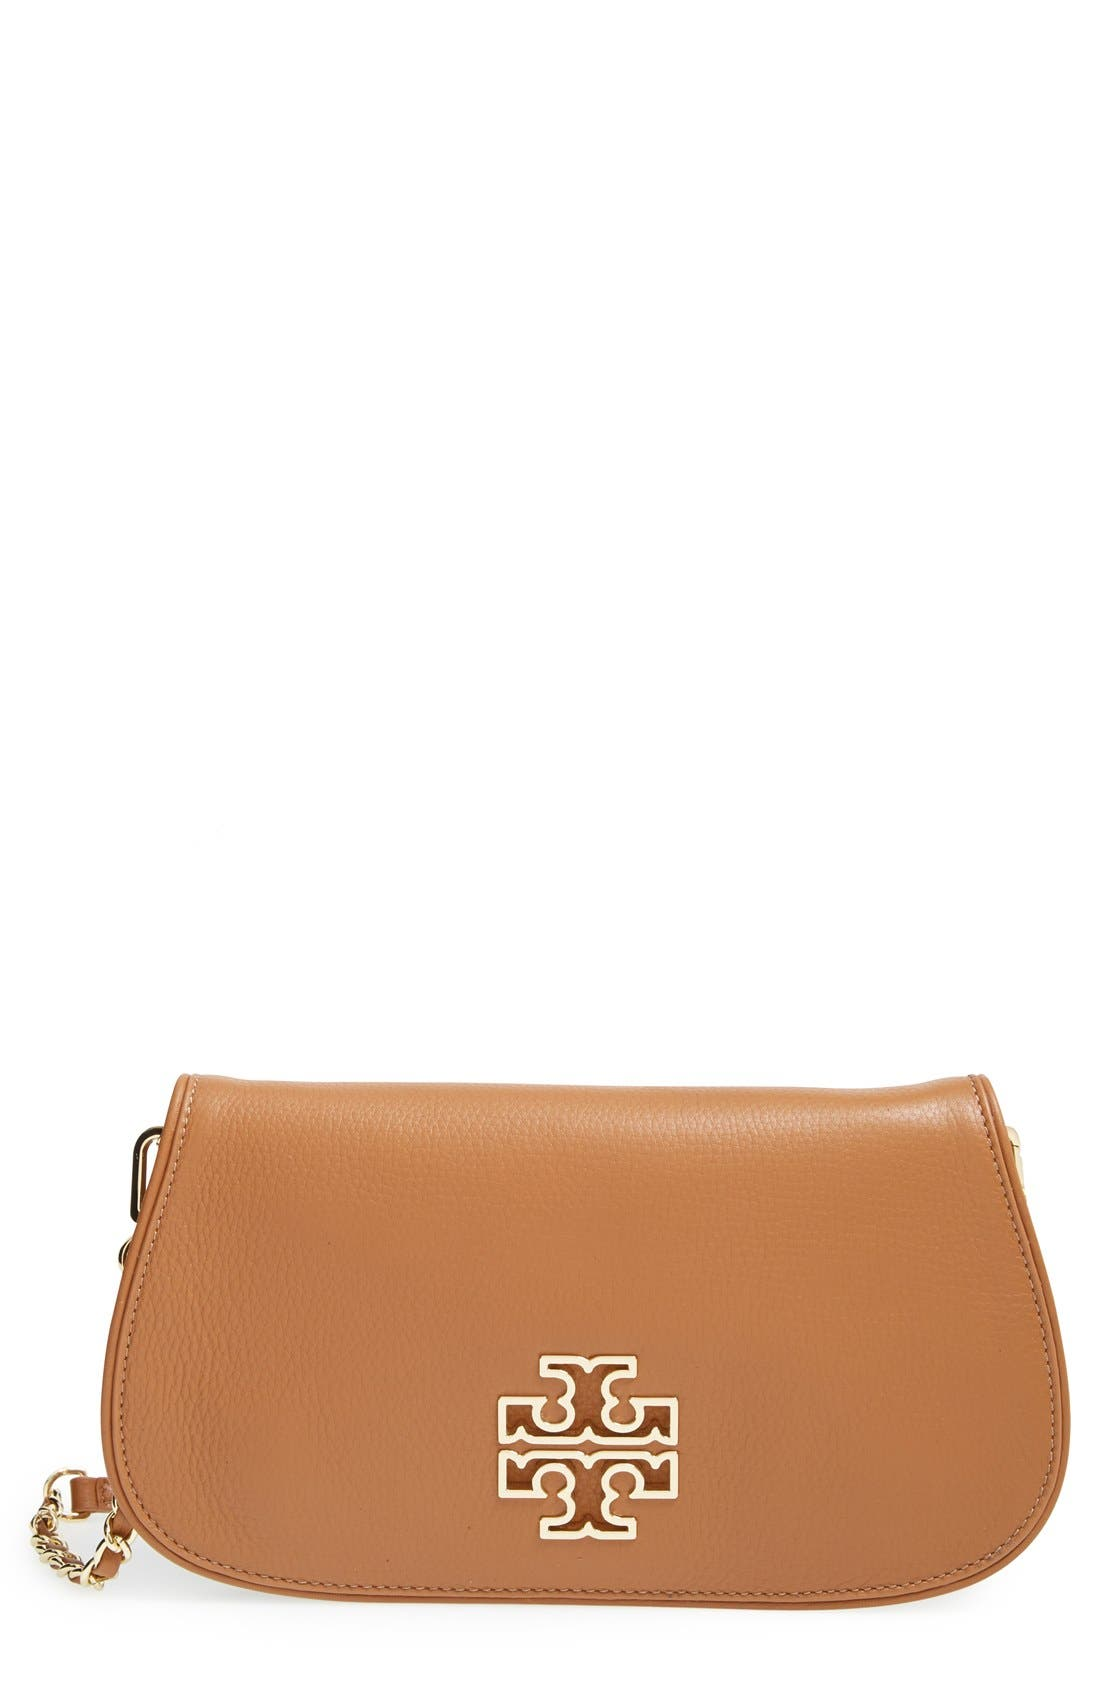 Alternate Image 1 Selected - Tory Burch 'Britten' Leather Clutch